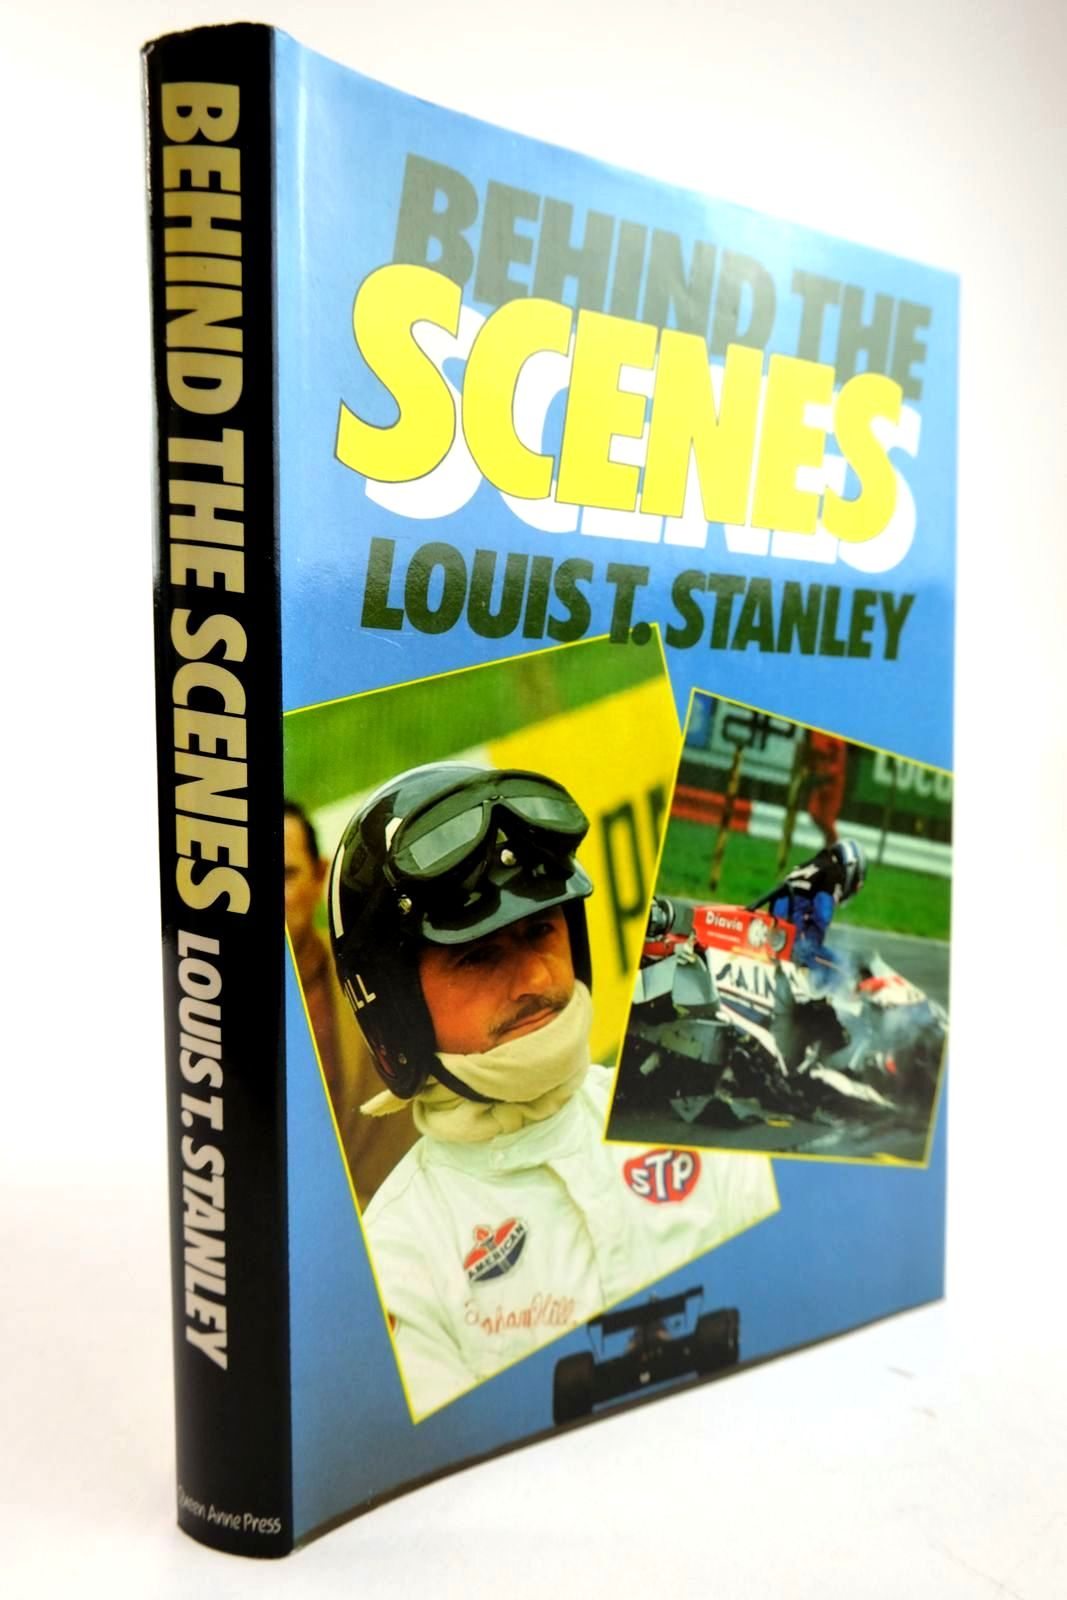 Photo of BEHIND THE SCENES written by Stanley, Louis T. published by Queen Anne Press (STOCK CODE: 2134305)  for sale by Stella & Rose's Books